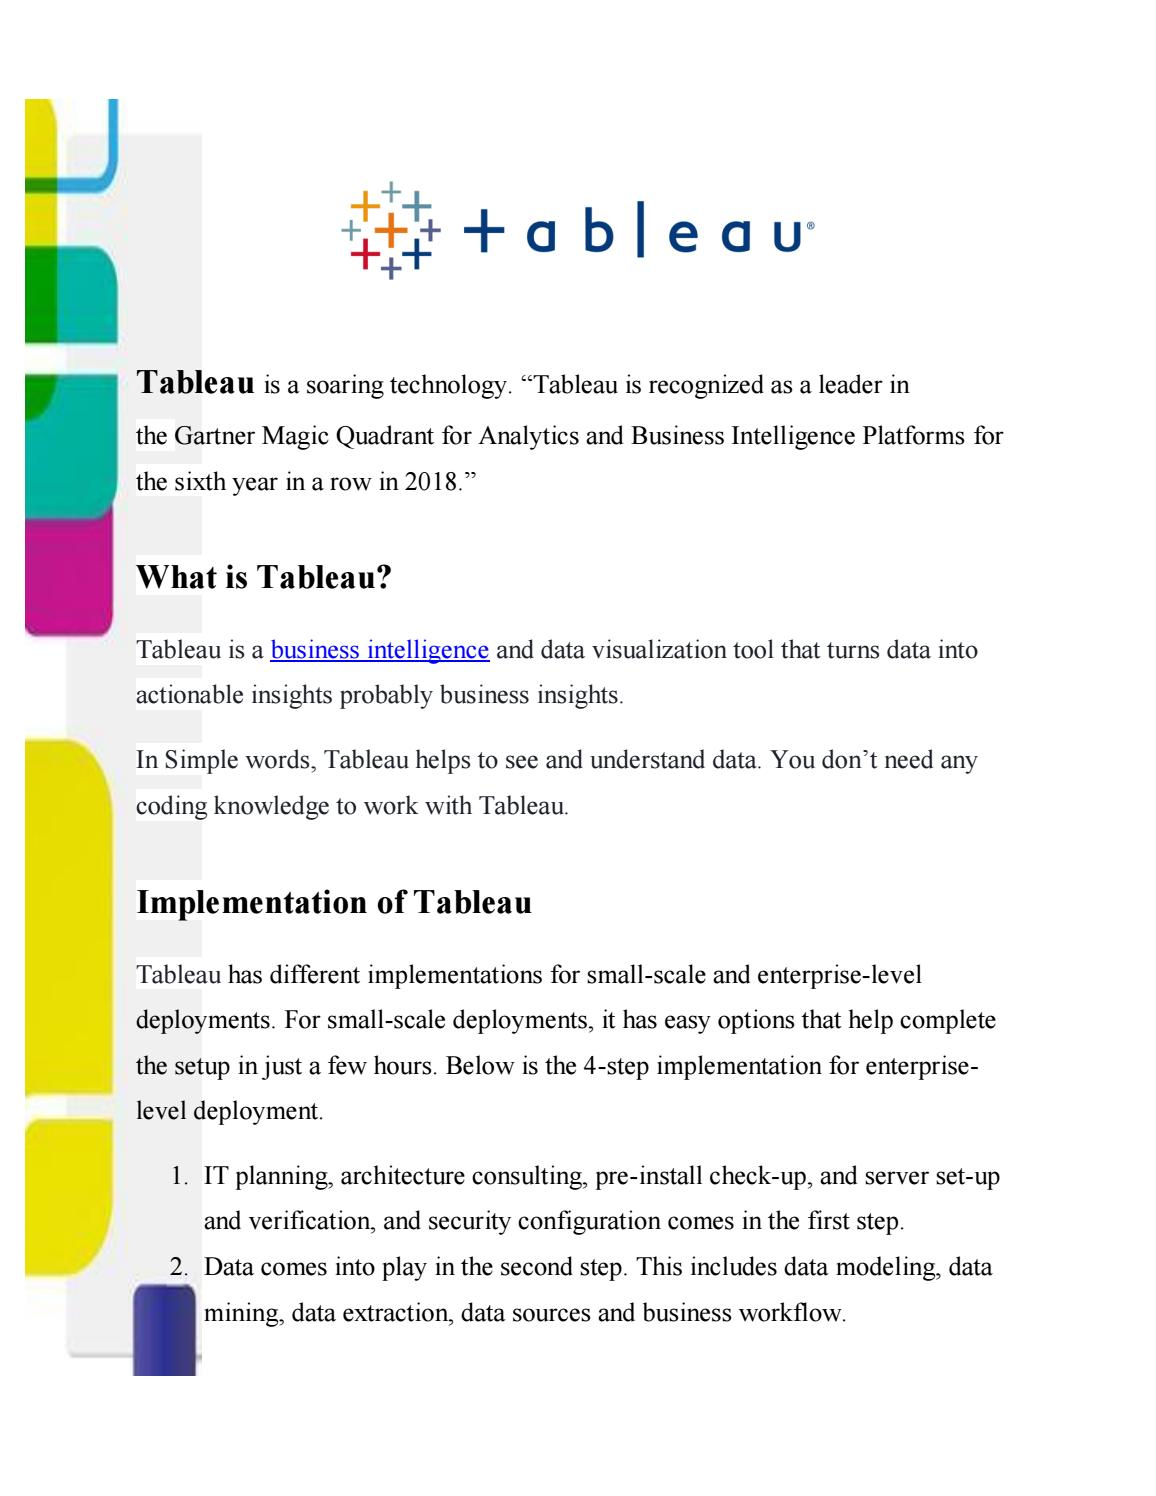 Introduction to Tableau | Tableau Implementation and